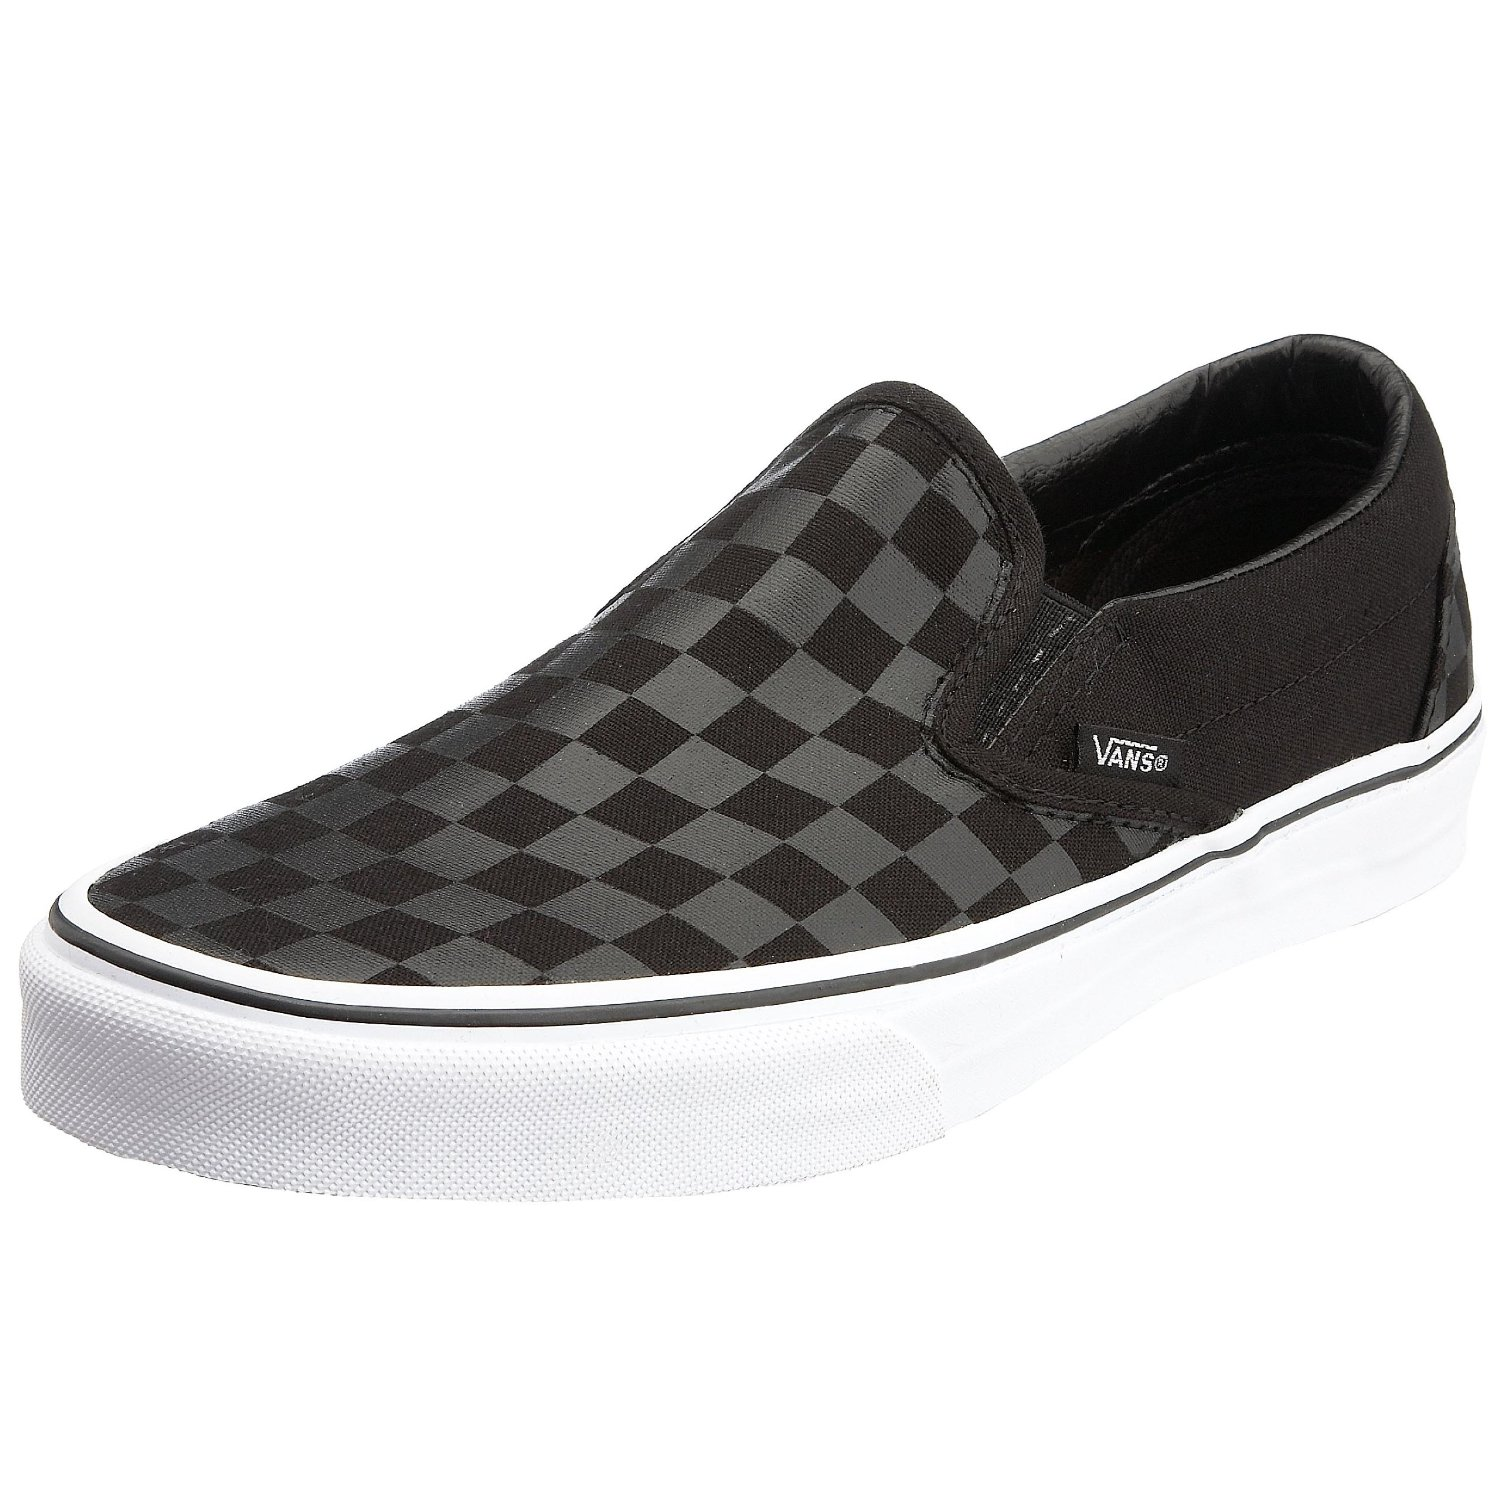 huge inventory reputable site unbeatable price Vans Classic Clip on Trainer Black/Check at Test Shop